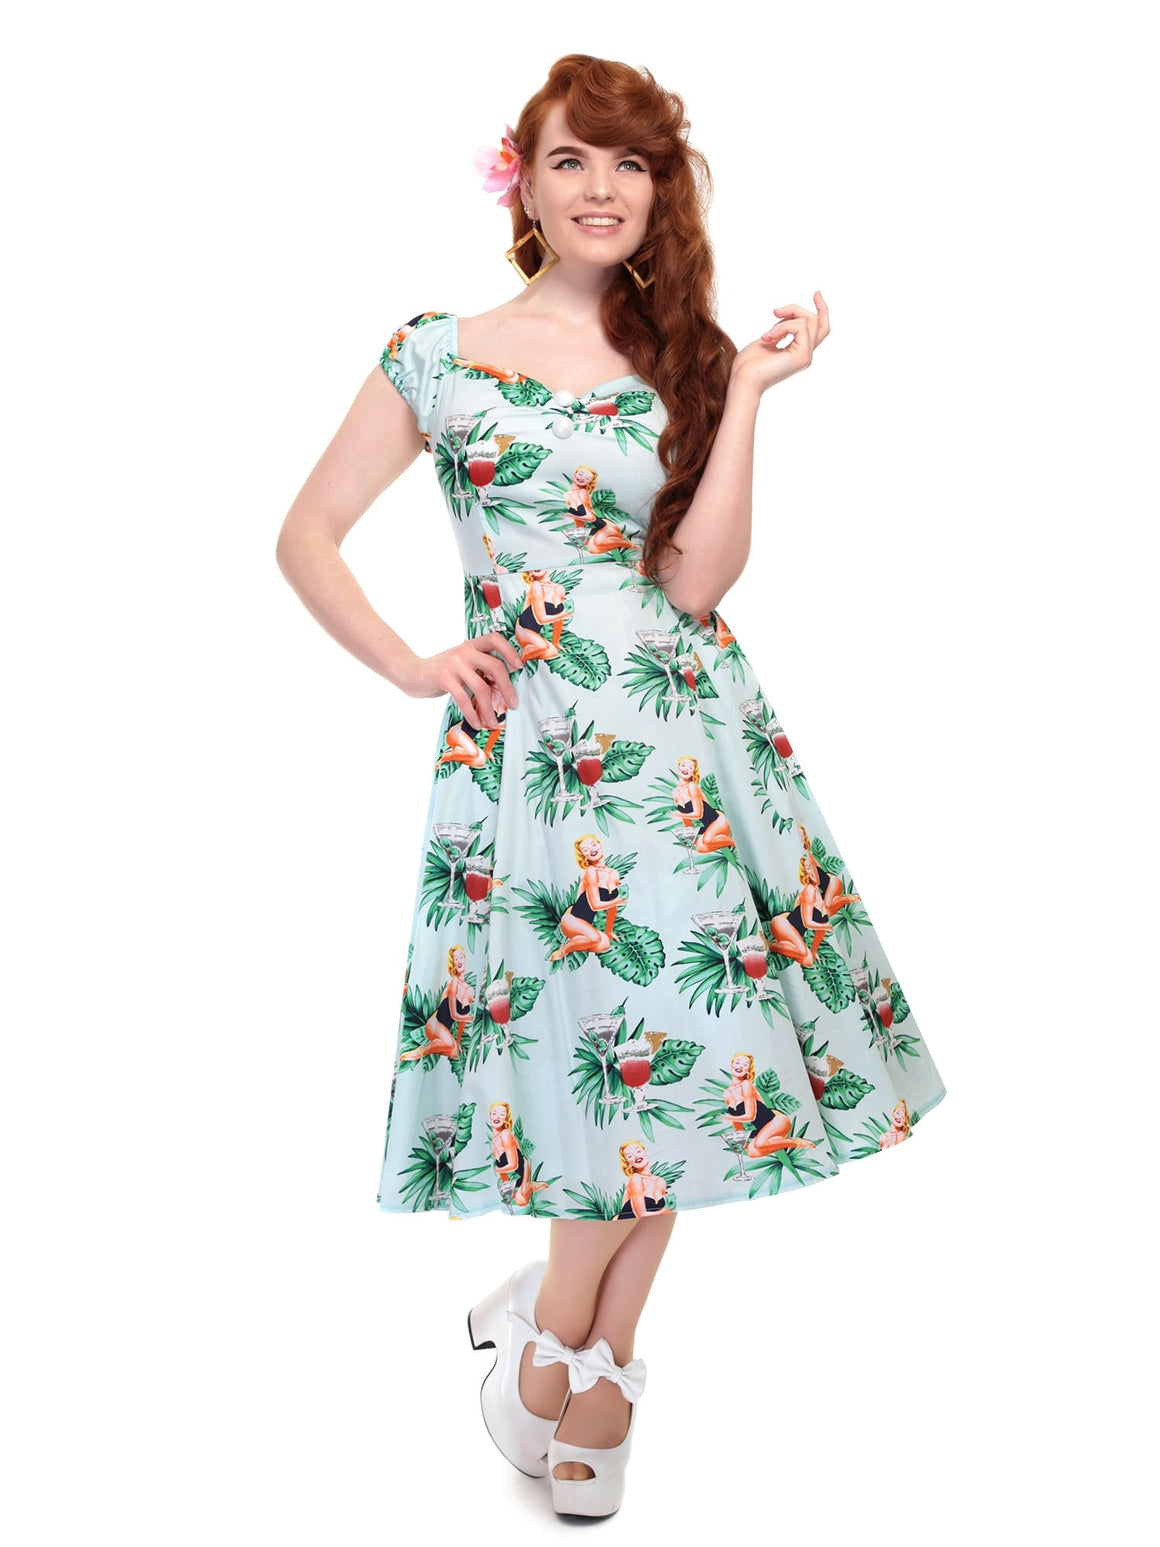 Now on Sale the Dotti Dress in Mint and Martini Girl Print!